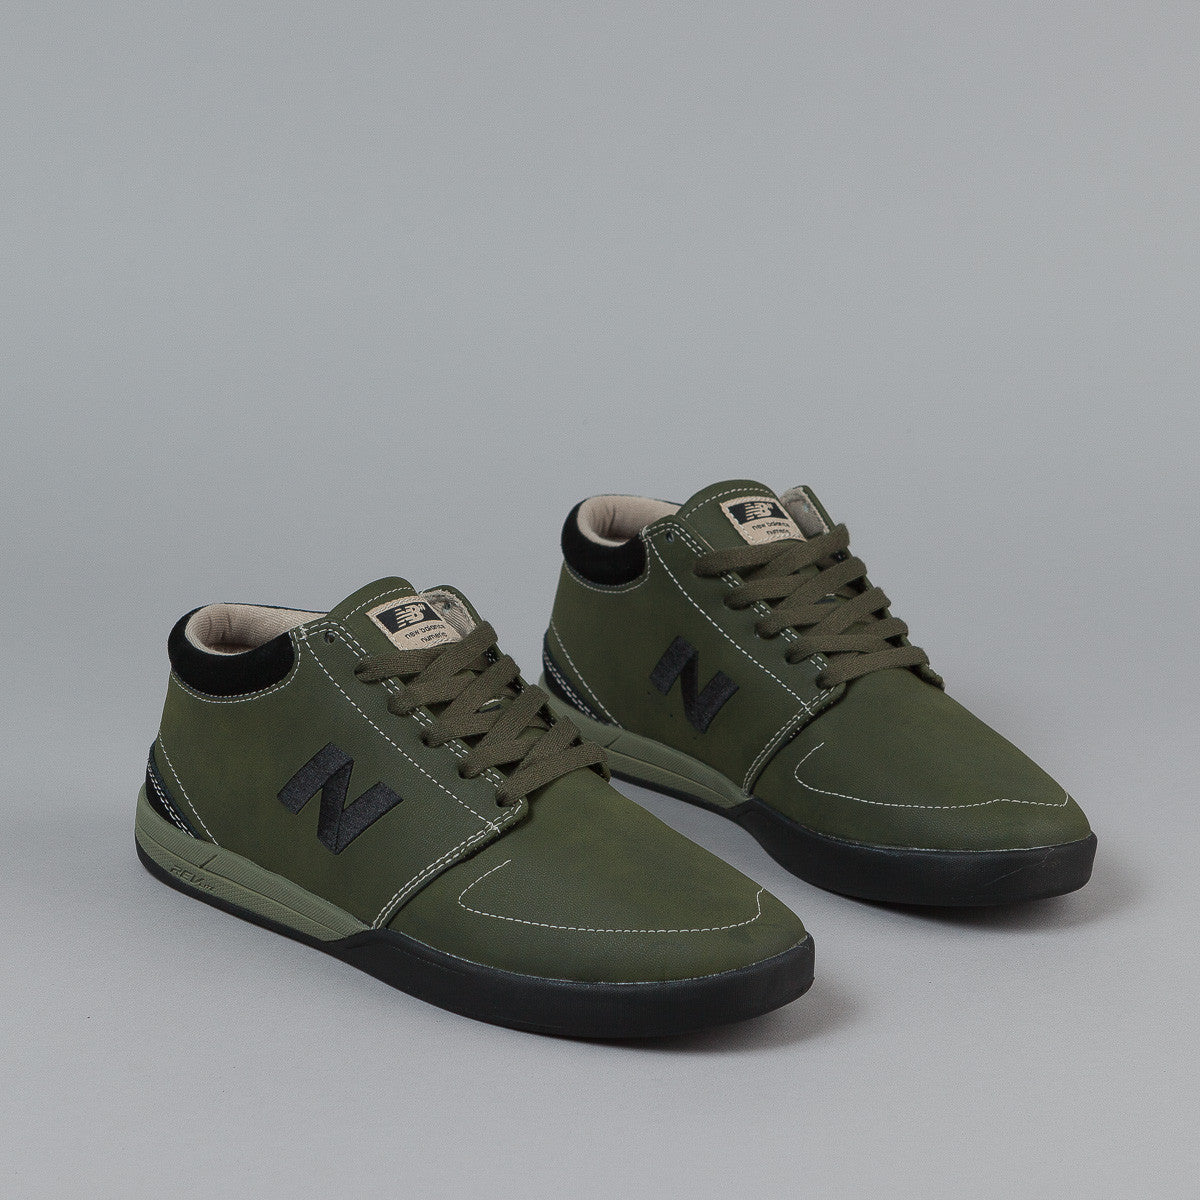 New Balance Numeric Brighton Hi 347 Shoes - Olive